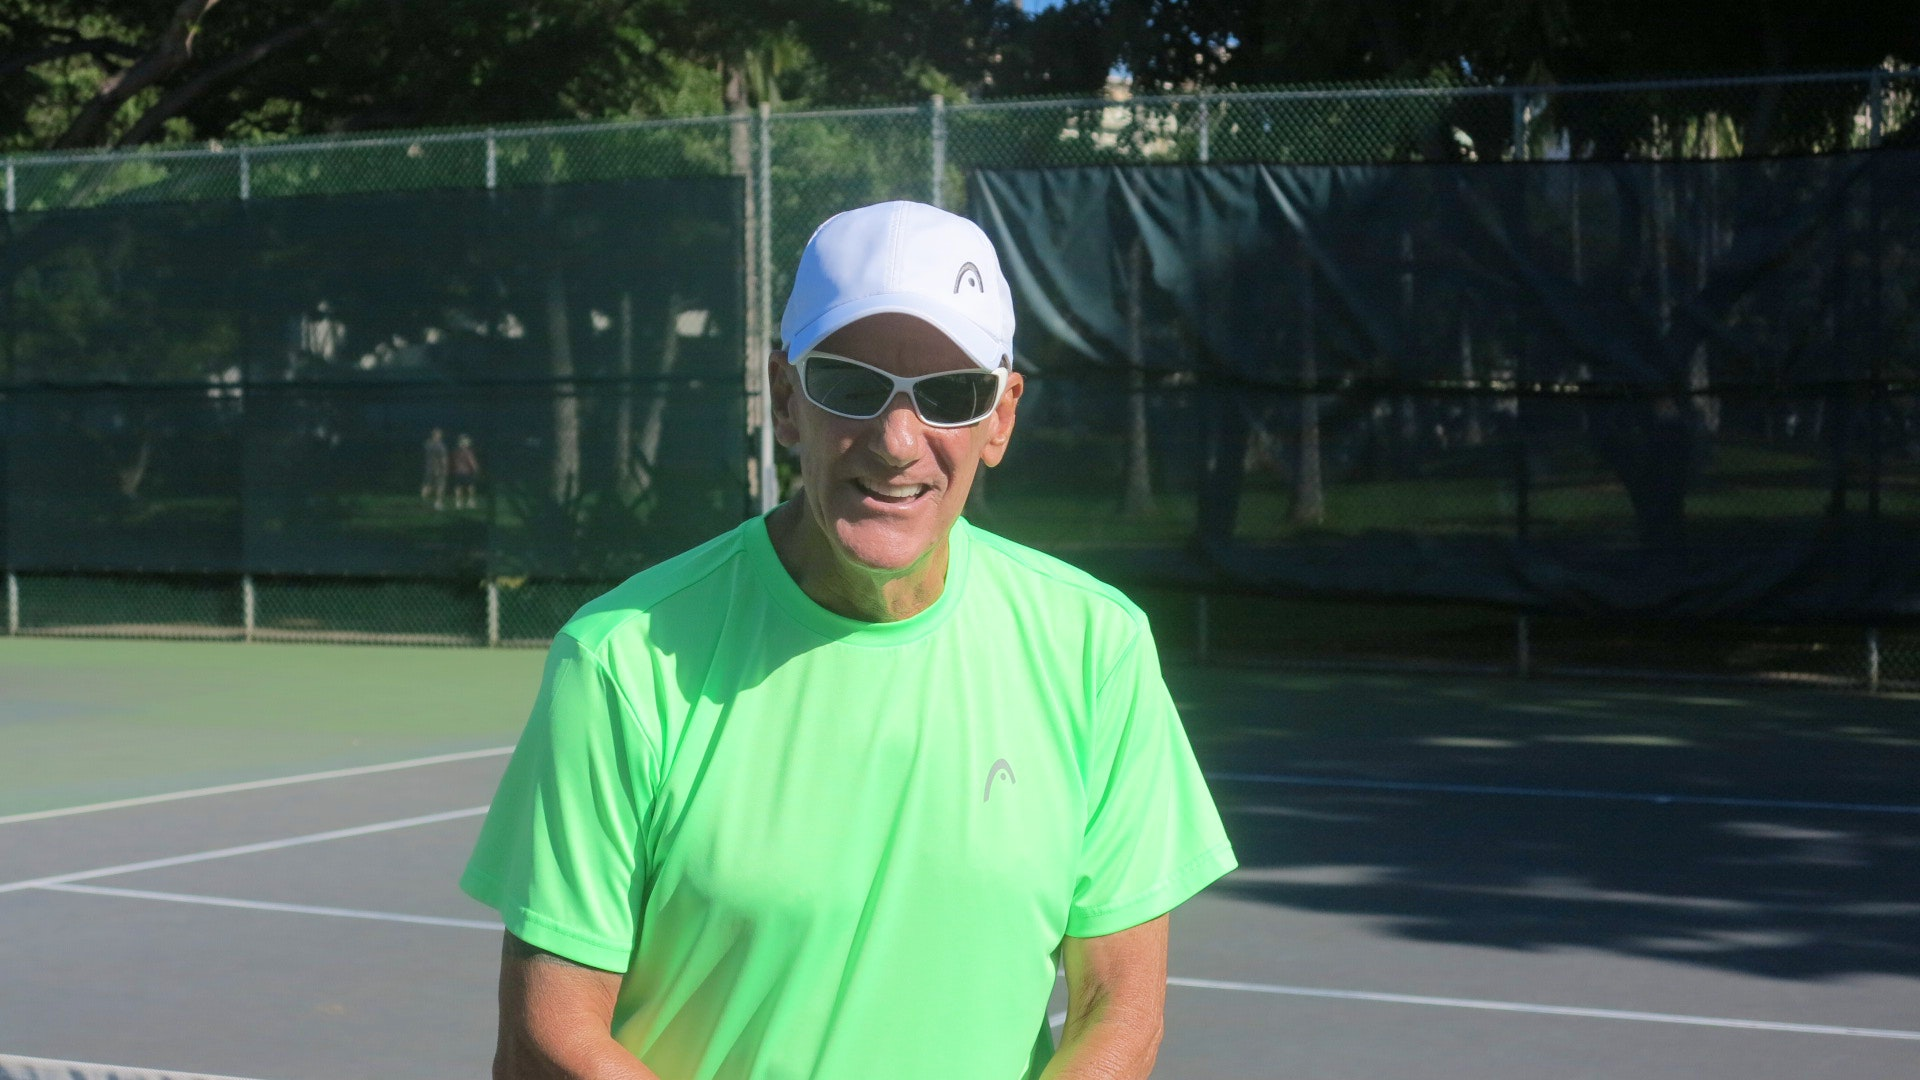 Dennis C. teaches tennis lessons in Honolulu, HI